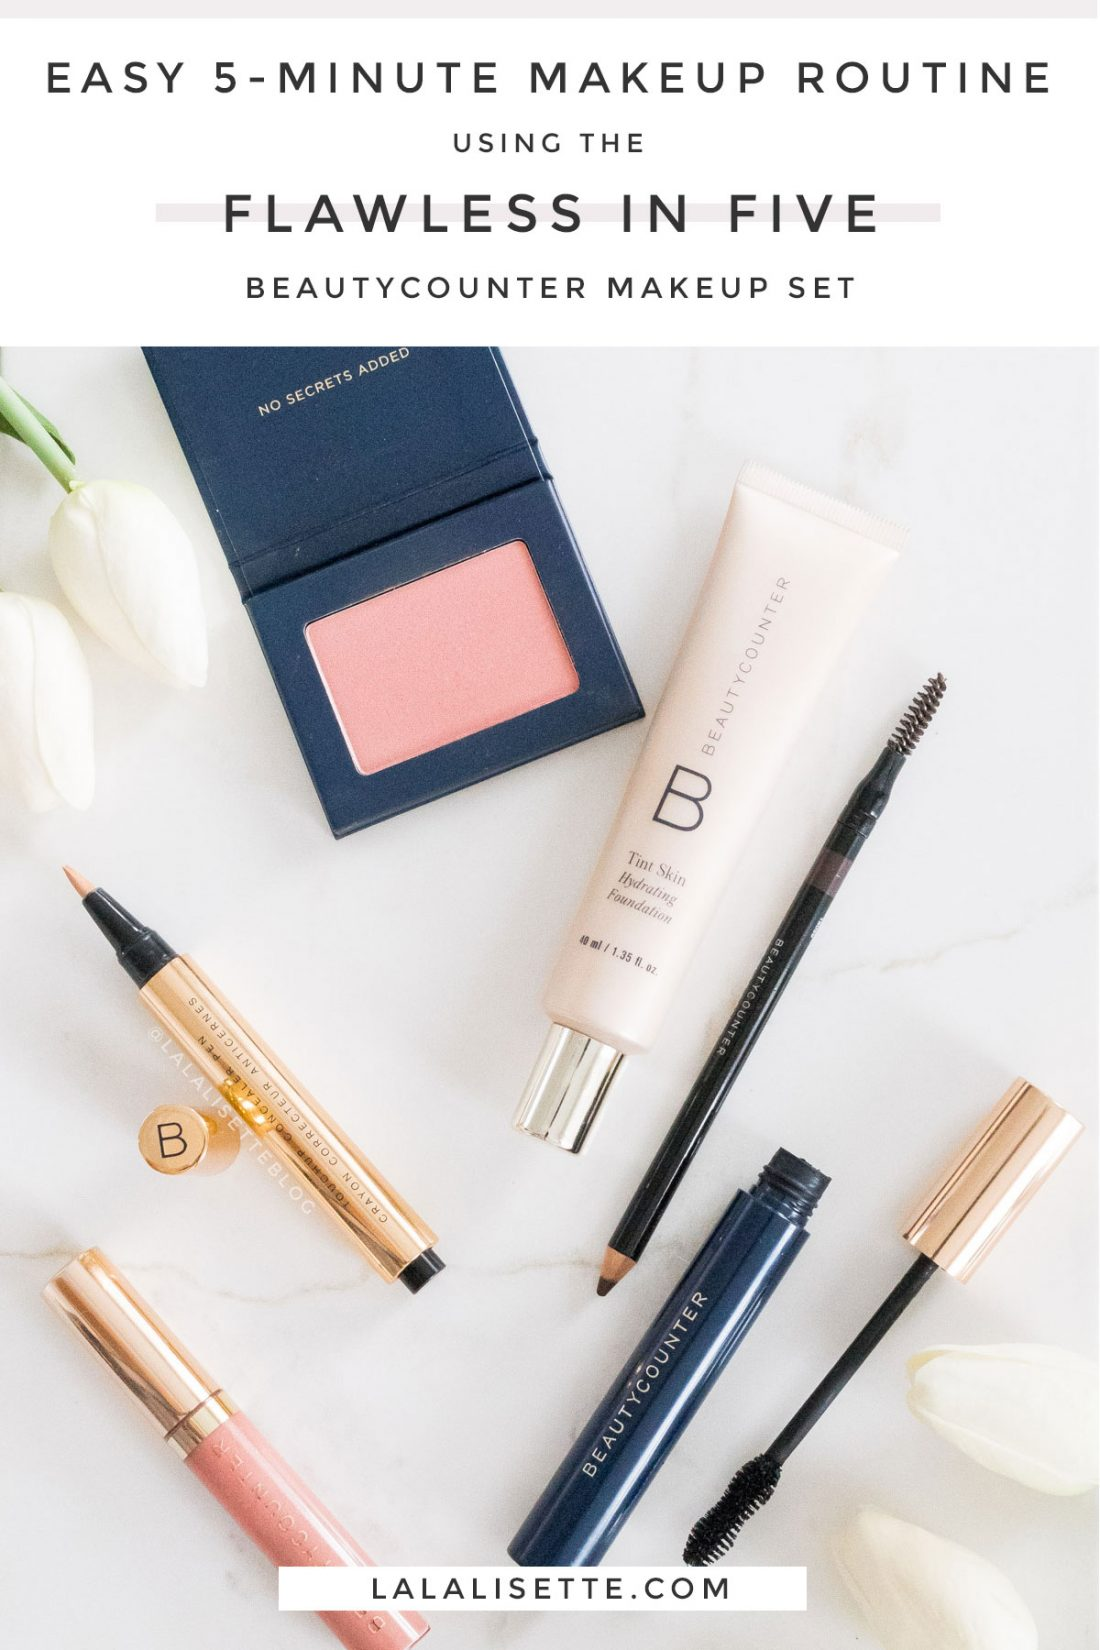 Beautycounter Flawless in Five Review